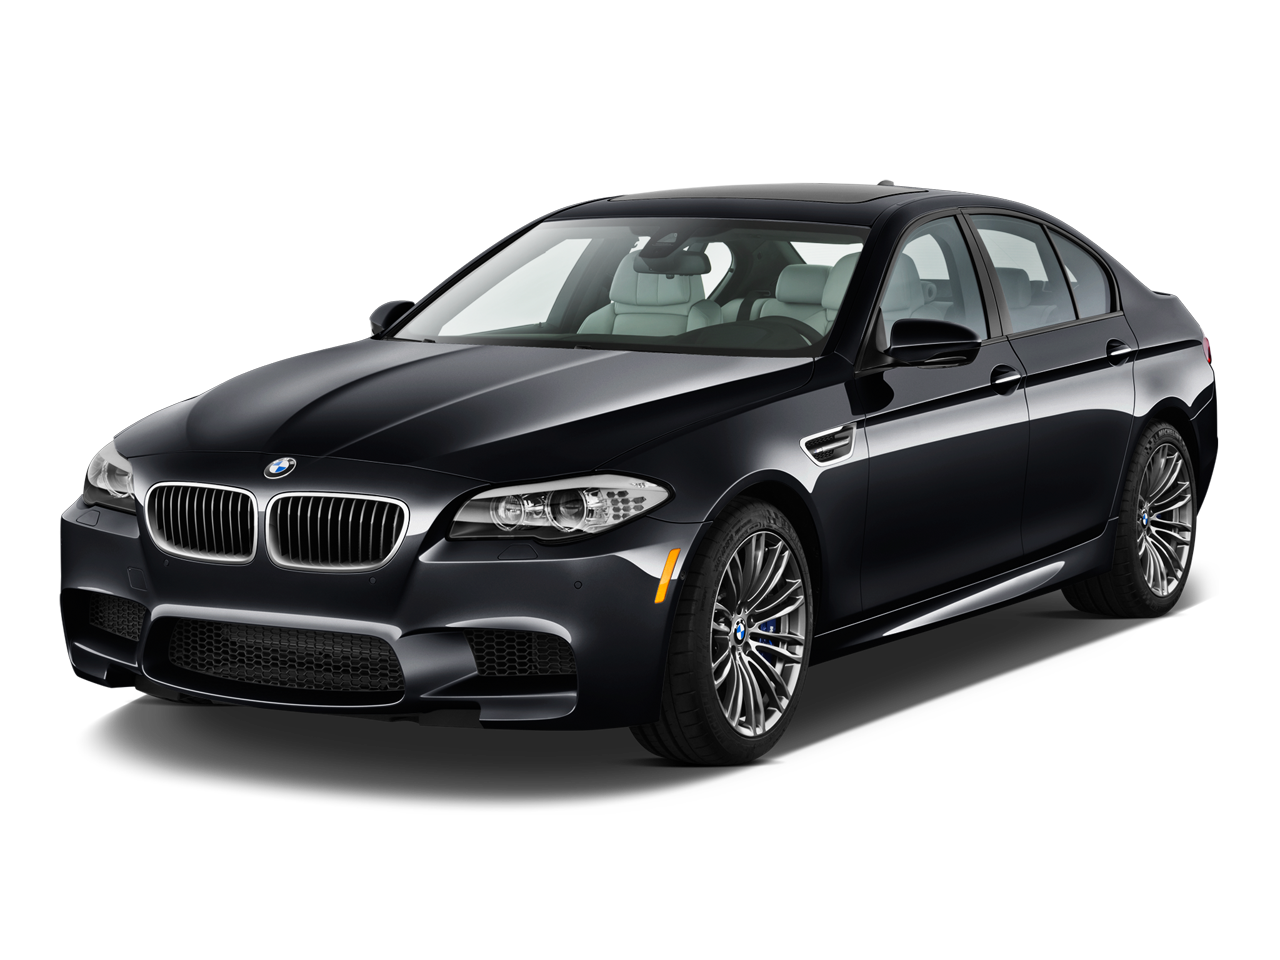 Hq Bmw Png Transparent Bmw Png Images Pluspng